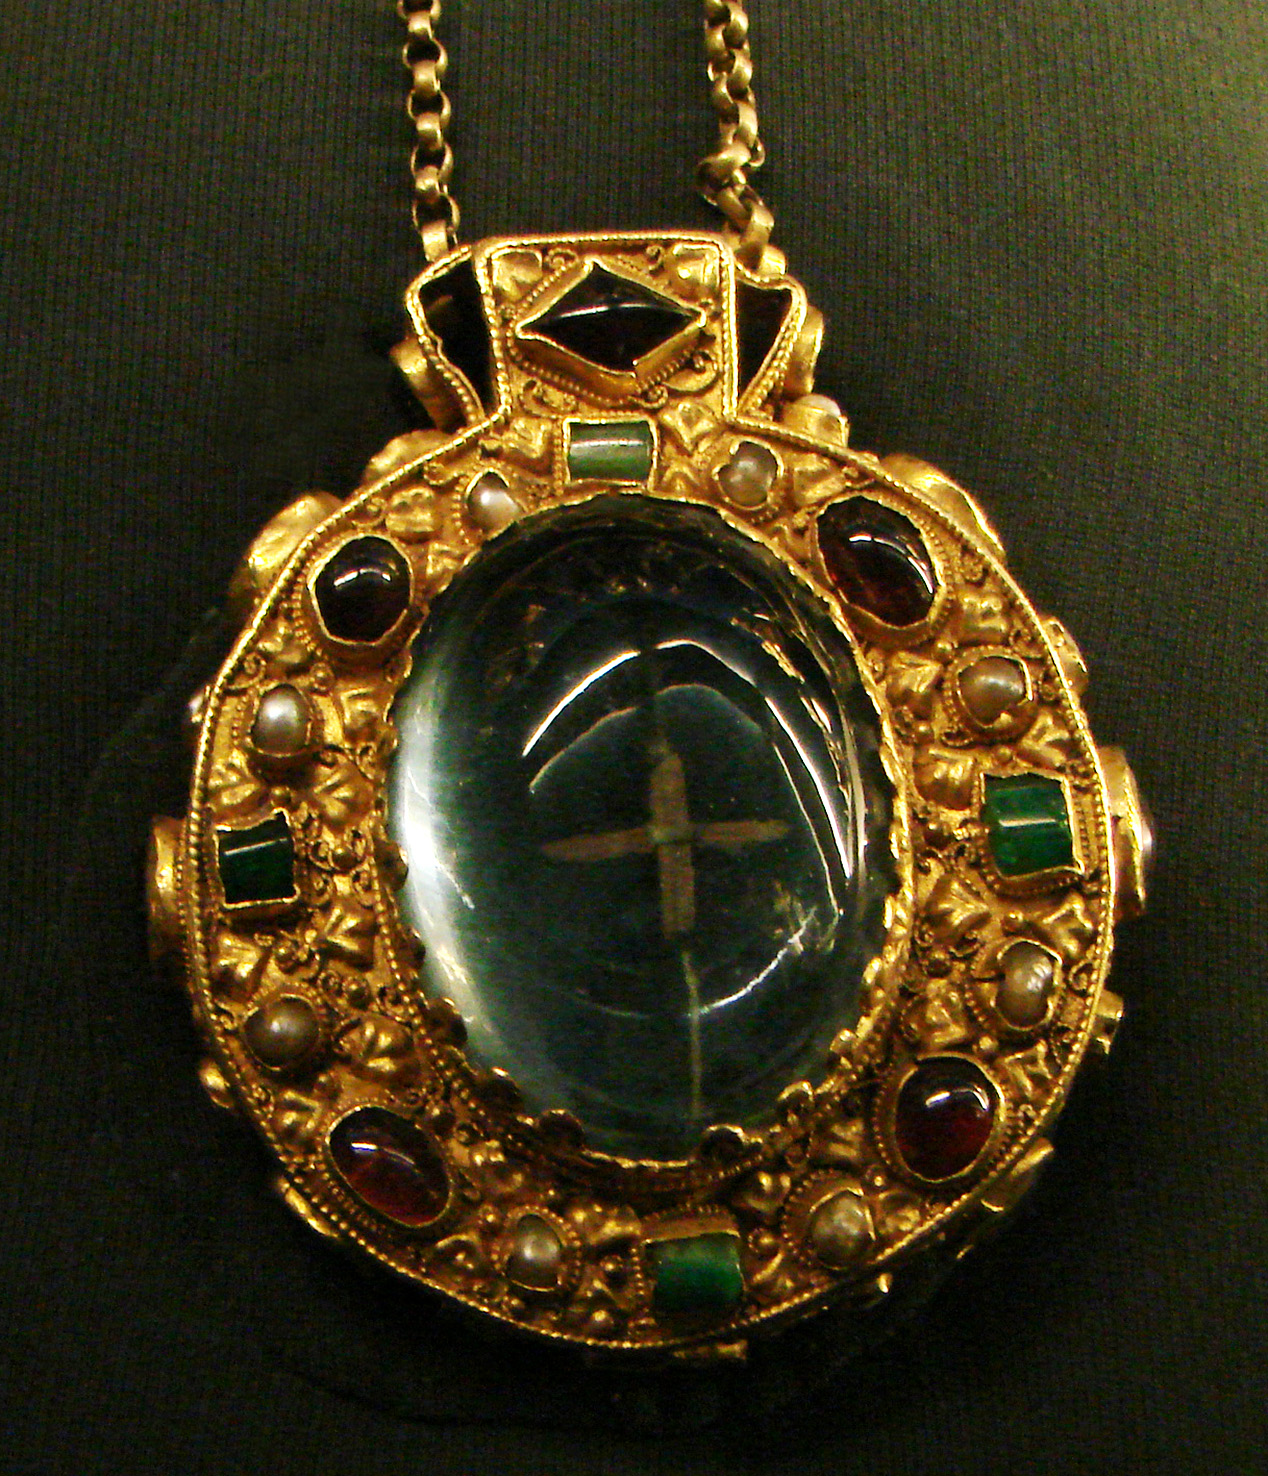 The Talisman of Charlemagne. The amulet was buried with Charlemagne in 814. Empress Josephine, wife of Napoleon, wore it at her coronation in 1804.